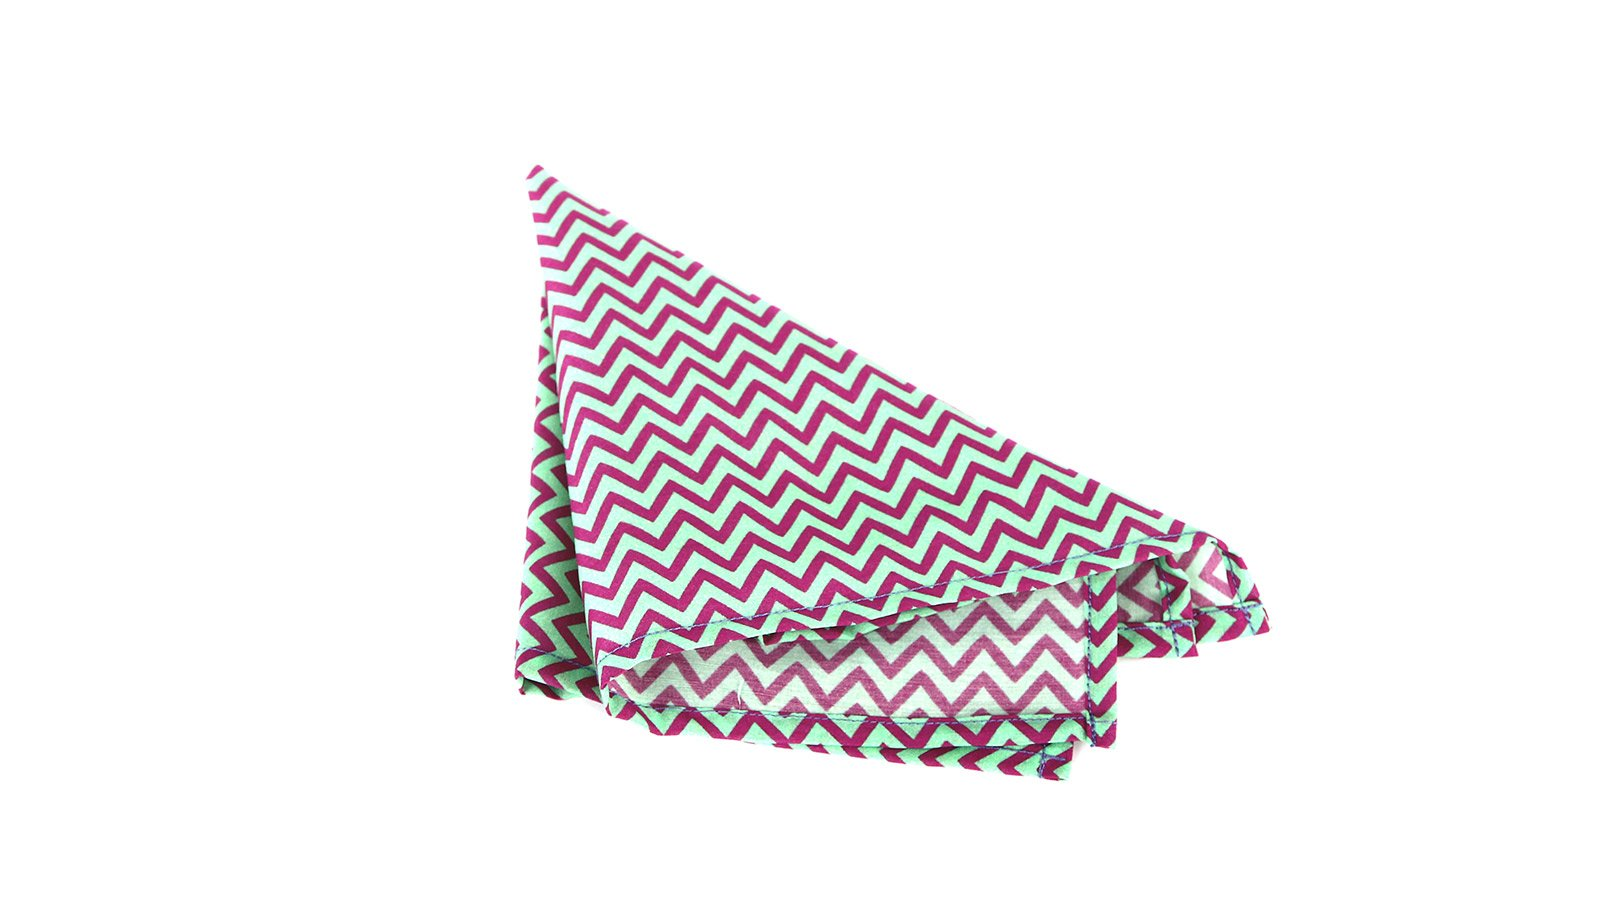 Pink & Green Chevron Patterned Pocket Square - slider image 1